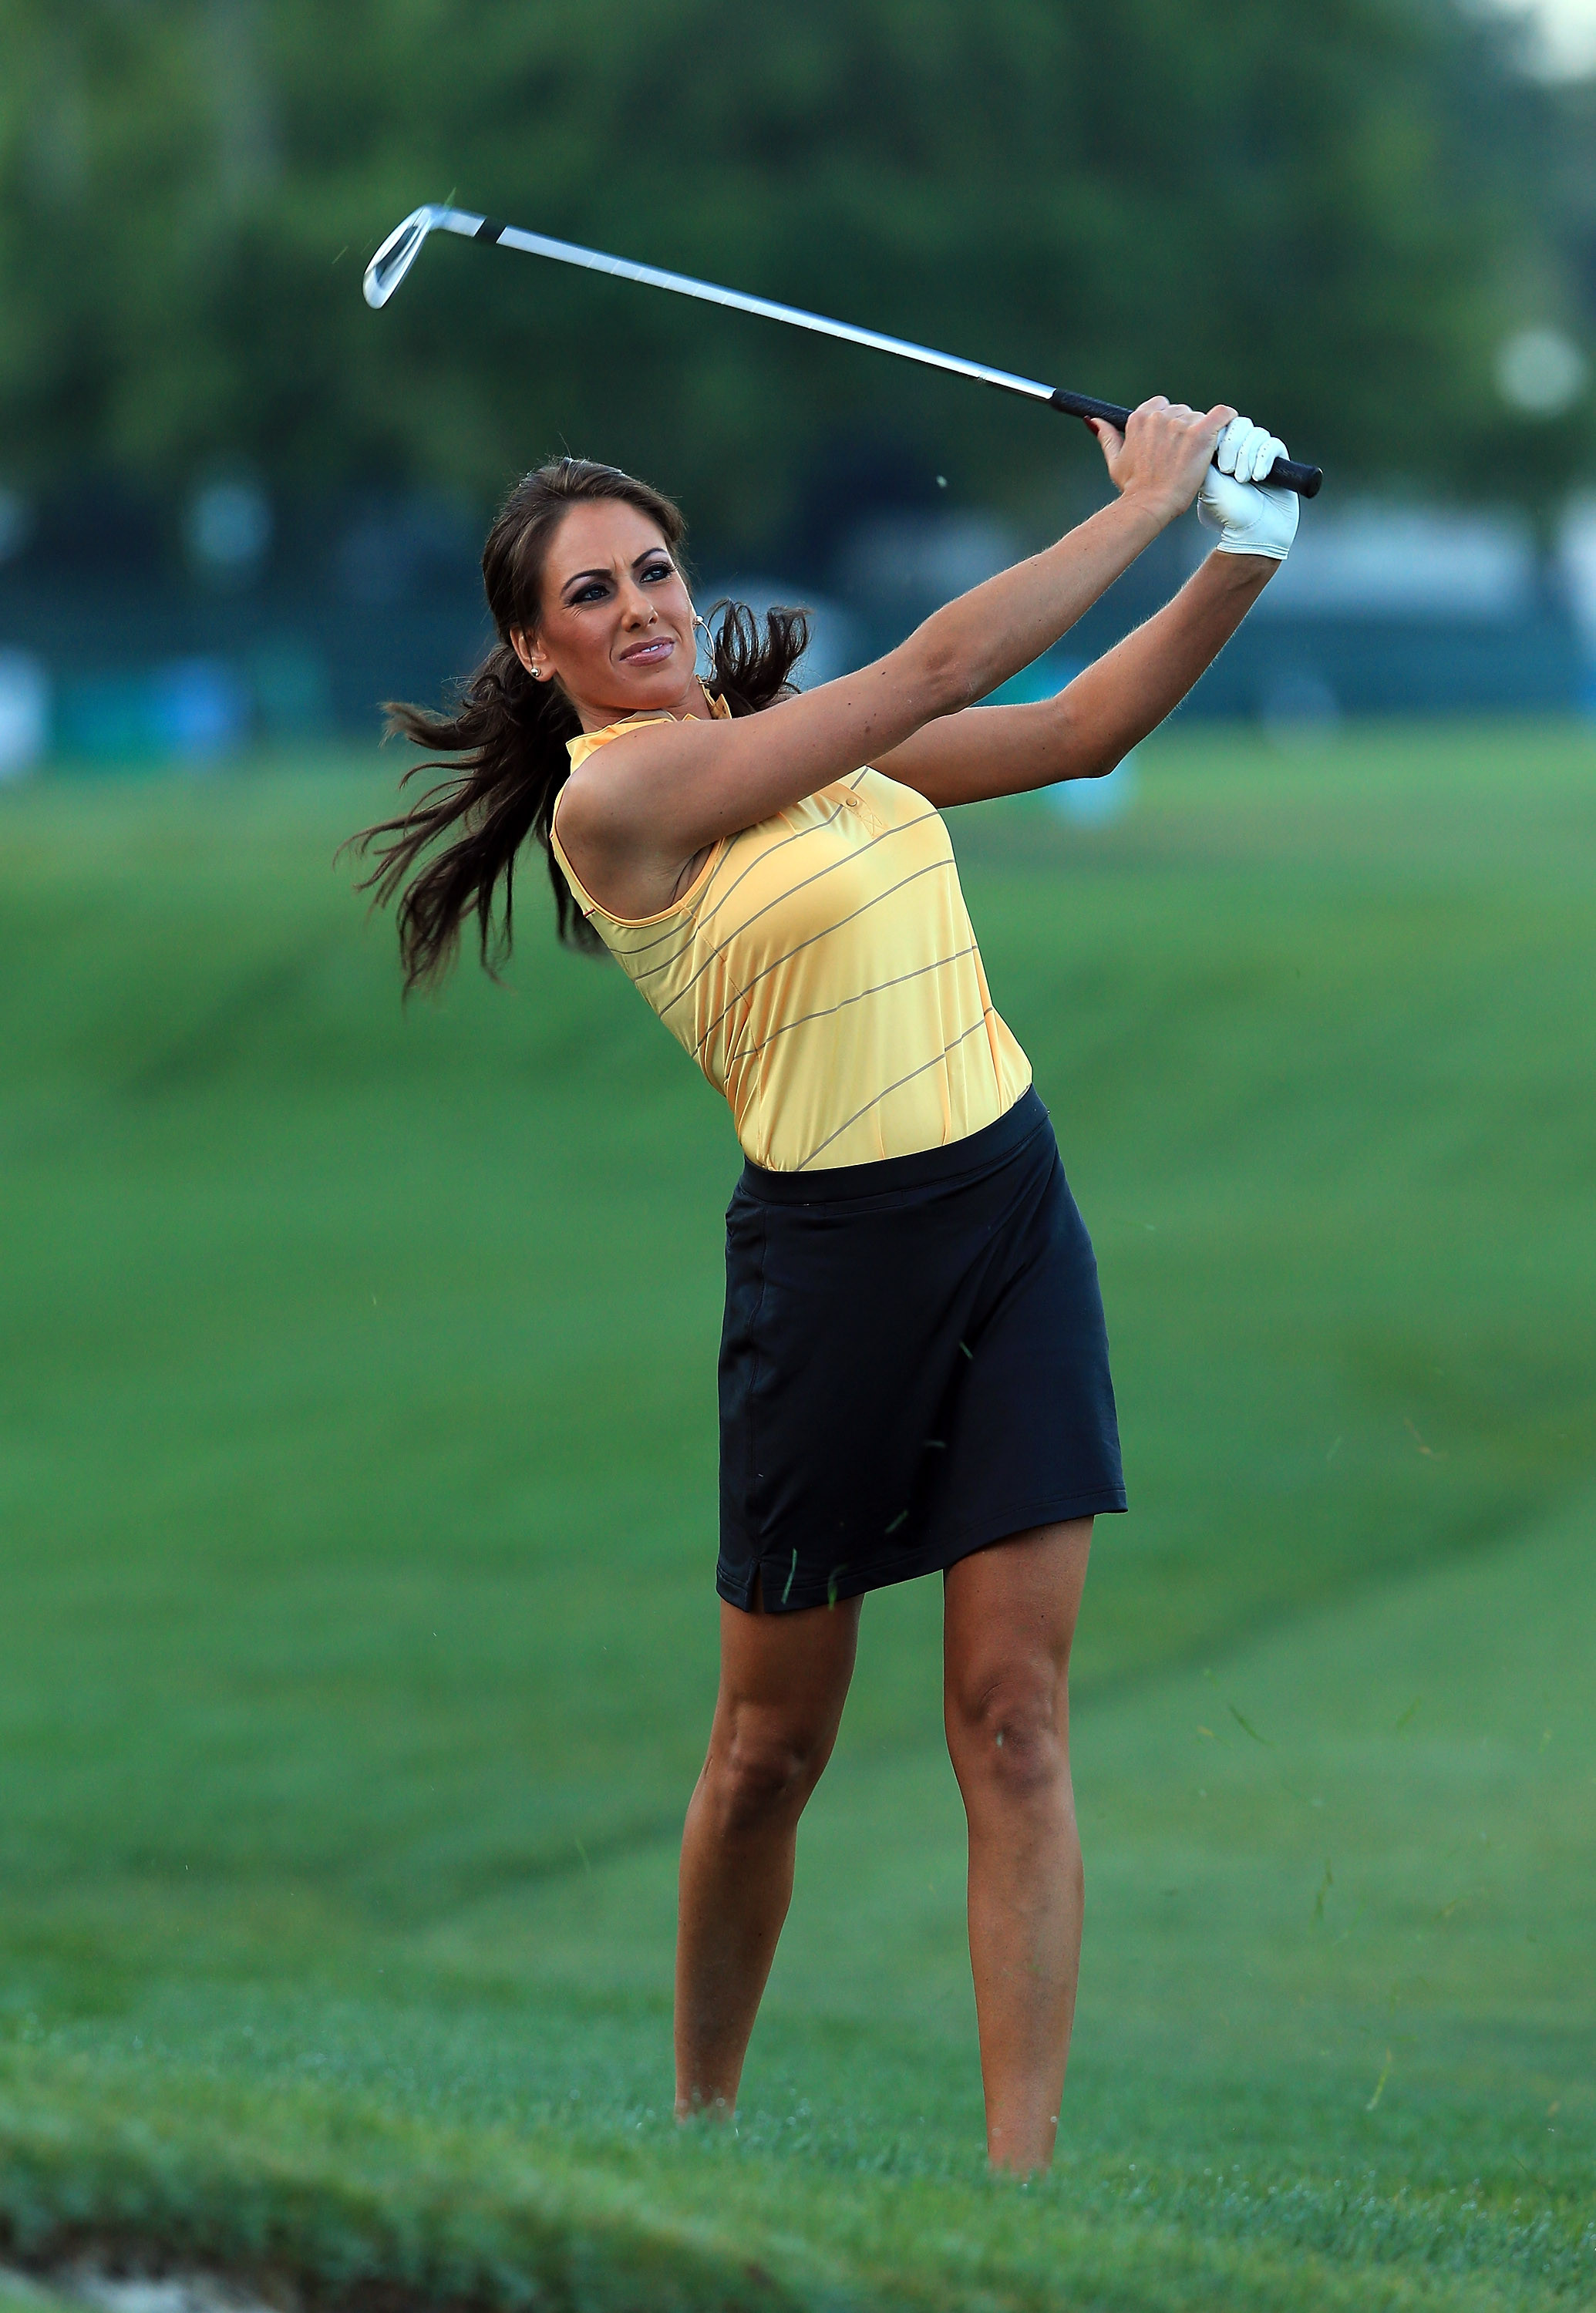 Holly Sonders To Appear On 'Golf Digest' Cover (VIDEO)